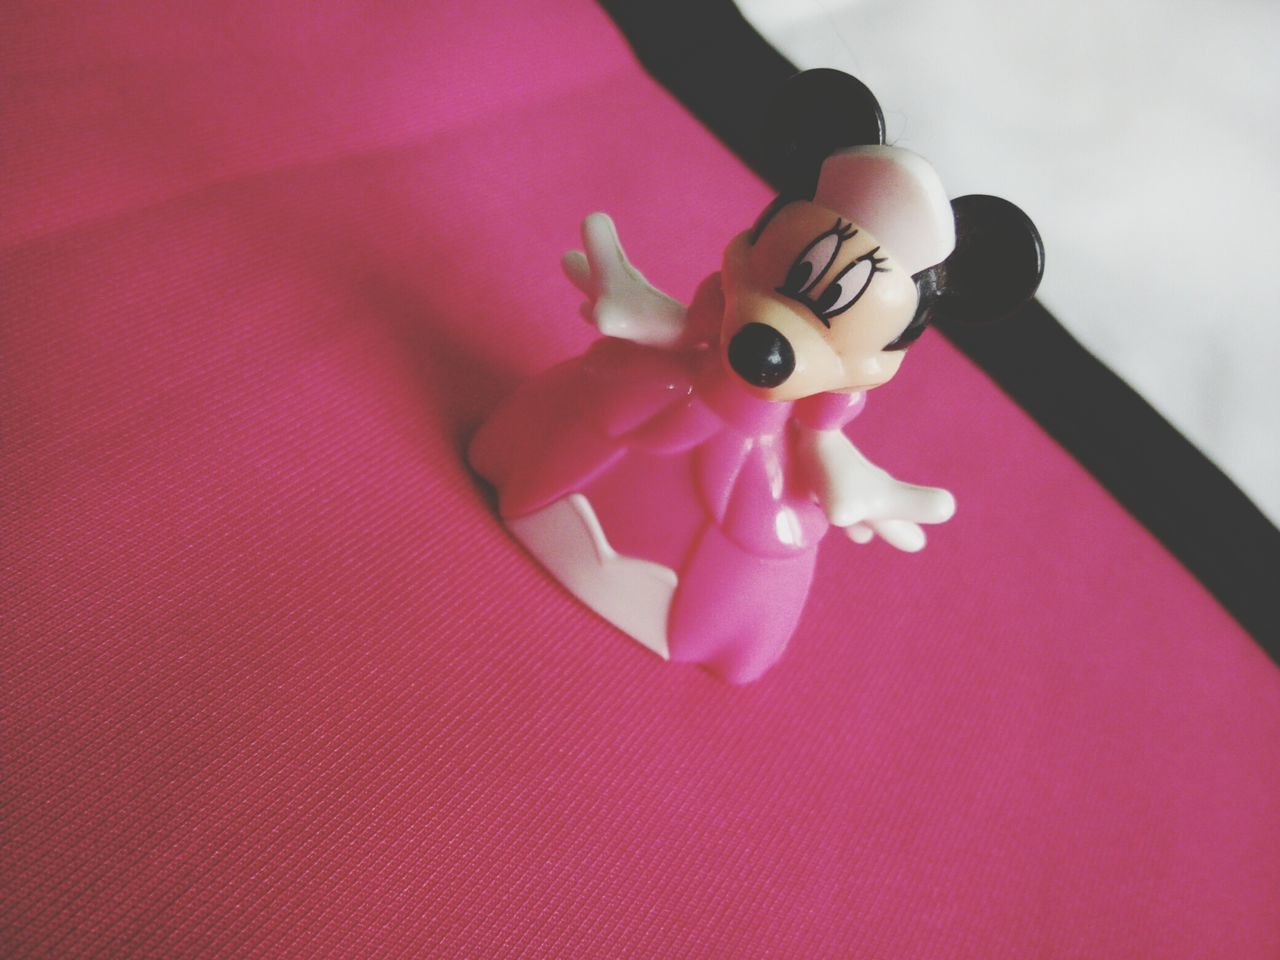 Indoors  Pink Color High Angle View No People Close-up Childhood Day Happiness ♡ Joy Disney Love Minnie Mouse ☆ Never Too Old For Disney  Forever Young Arts Culture And Entertainment